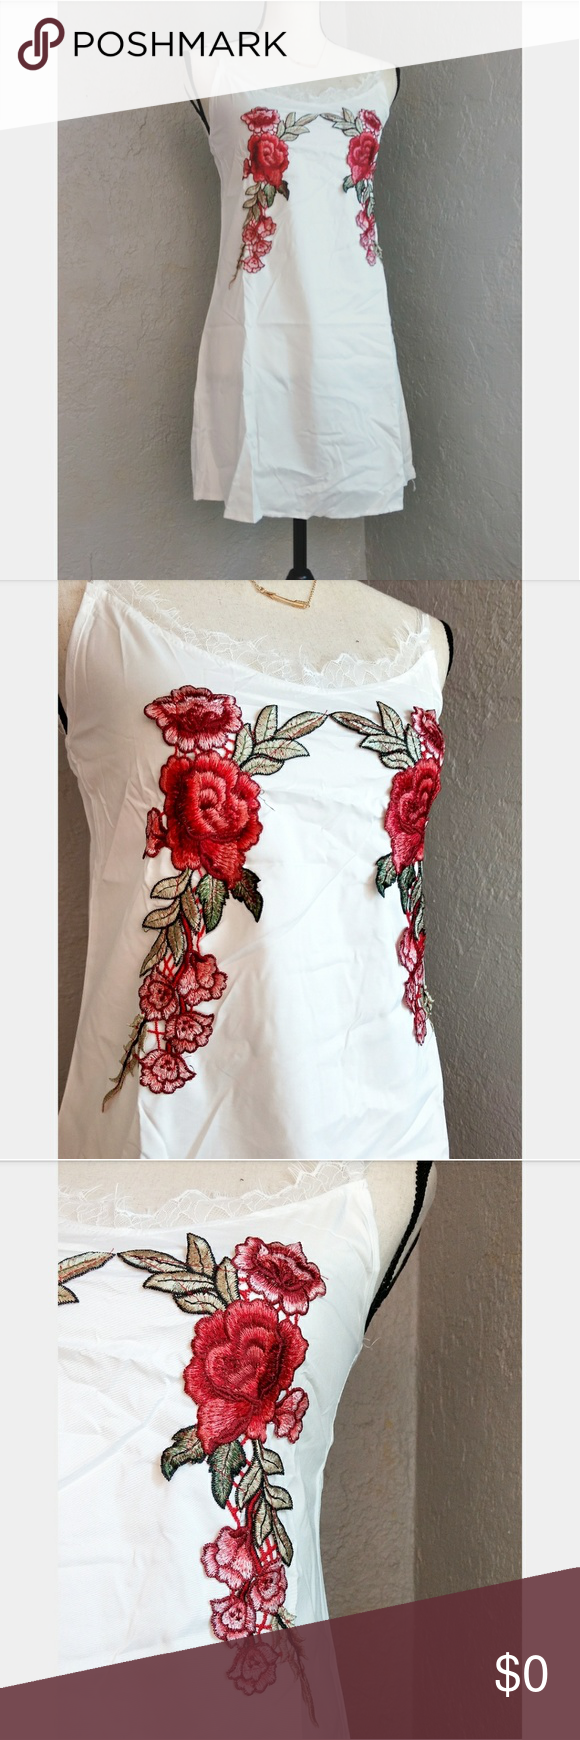 Red rose embroidery black slip dress rose embroidery dress brands